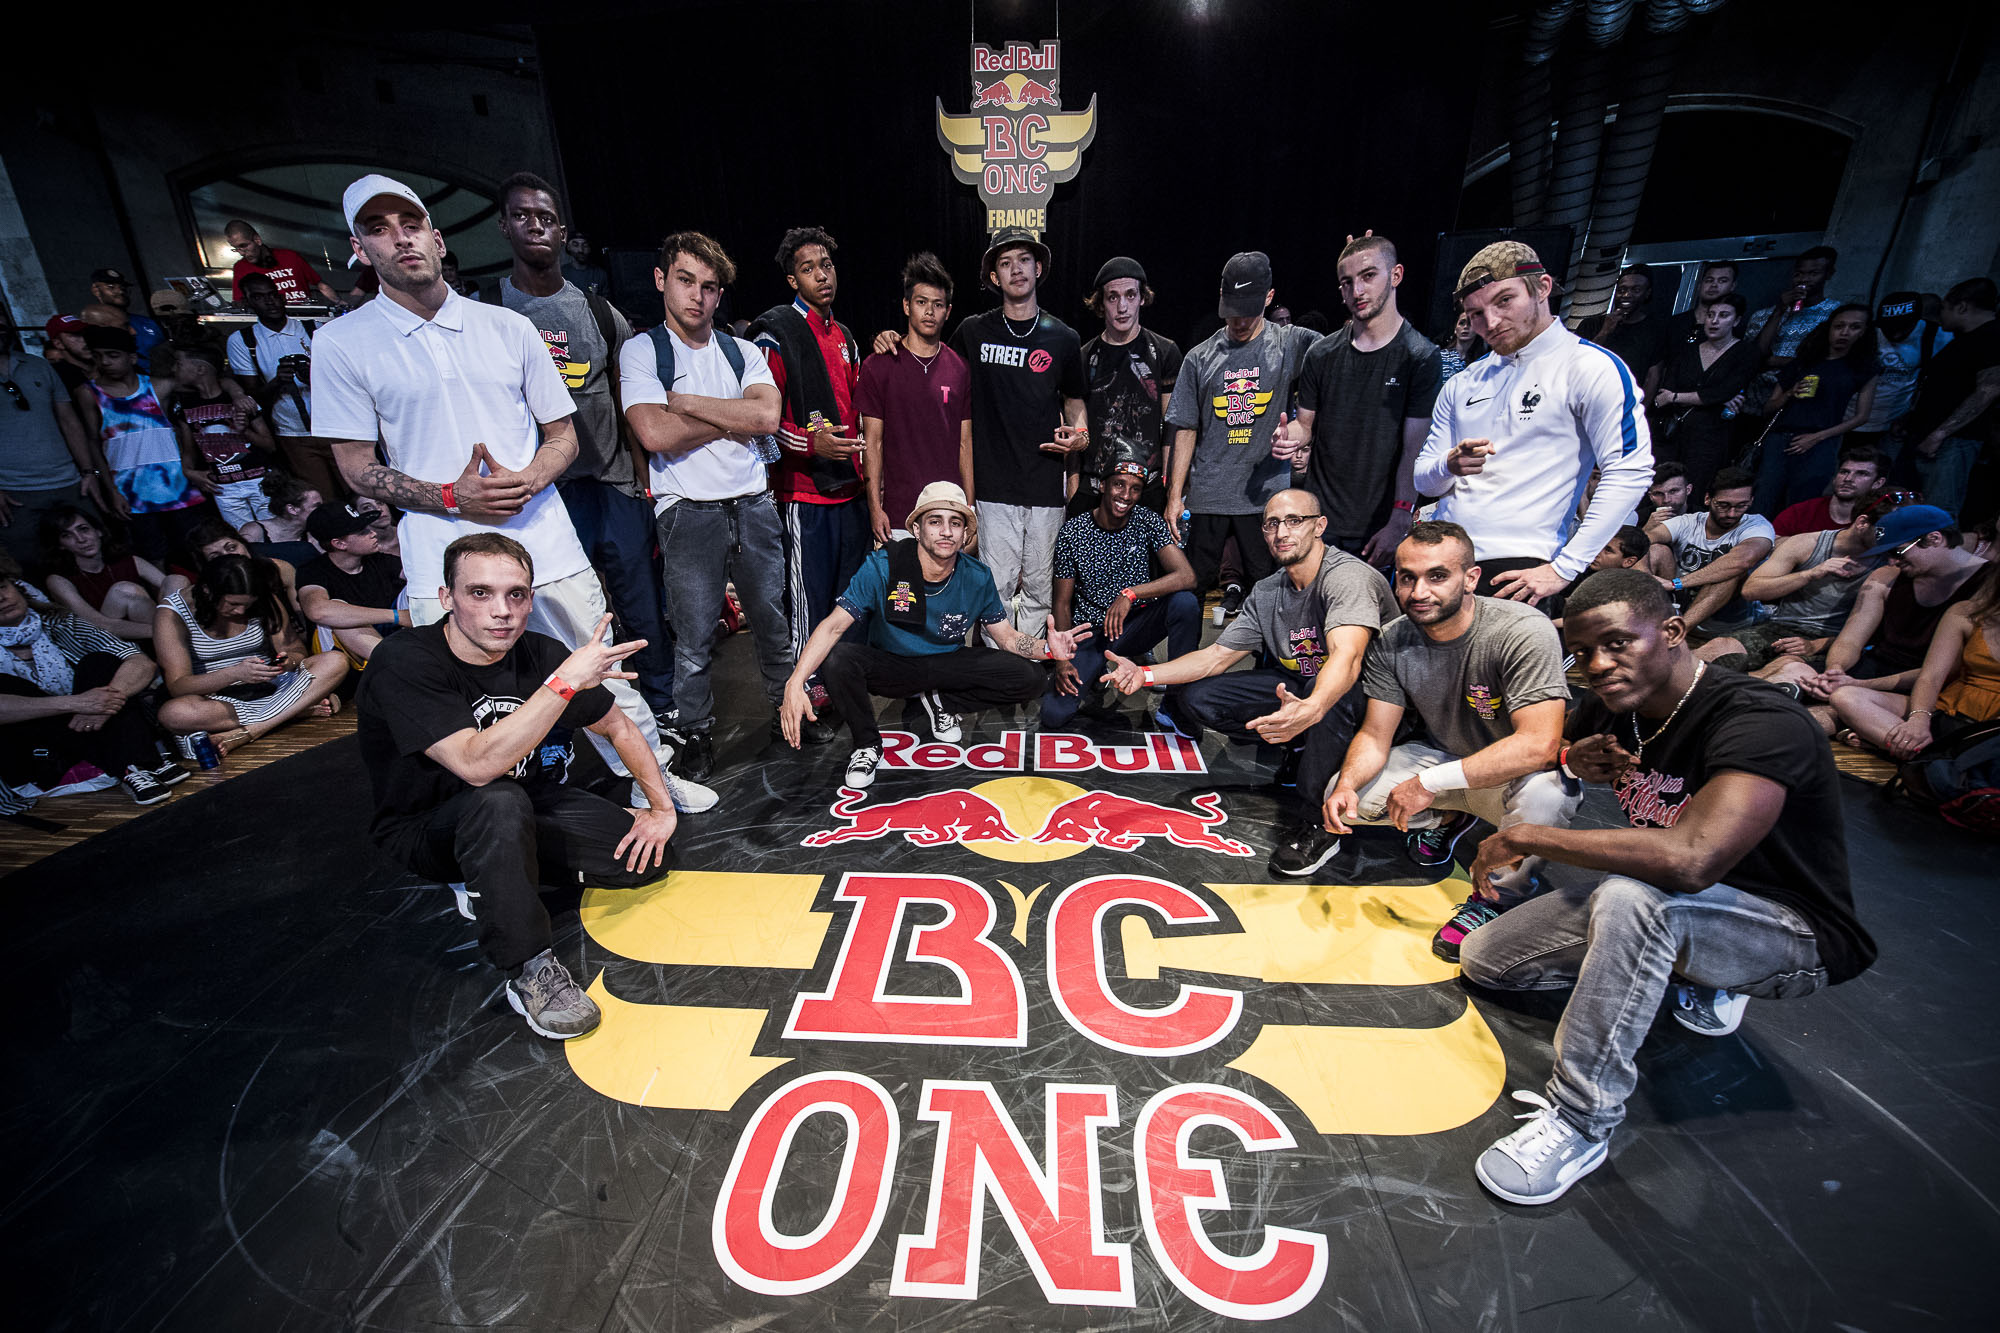 L-R Artson, Fenix, Sekou, Noe, Pluton, Will, Doudou, Timo, Shlag, Niggaz, Khalifa, Nabil, Francklin, Lil Kev, Fever, Dany are The Top 16 BBoys Posing for a portrait before the competition at the WIP Villette during the Red Bull BC One France Cypher Final in Paris, France on July 10th 2016.